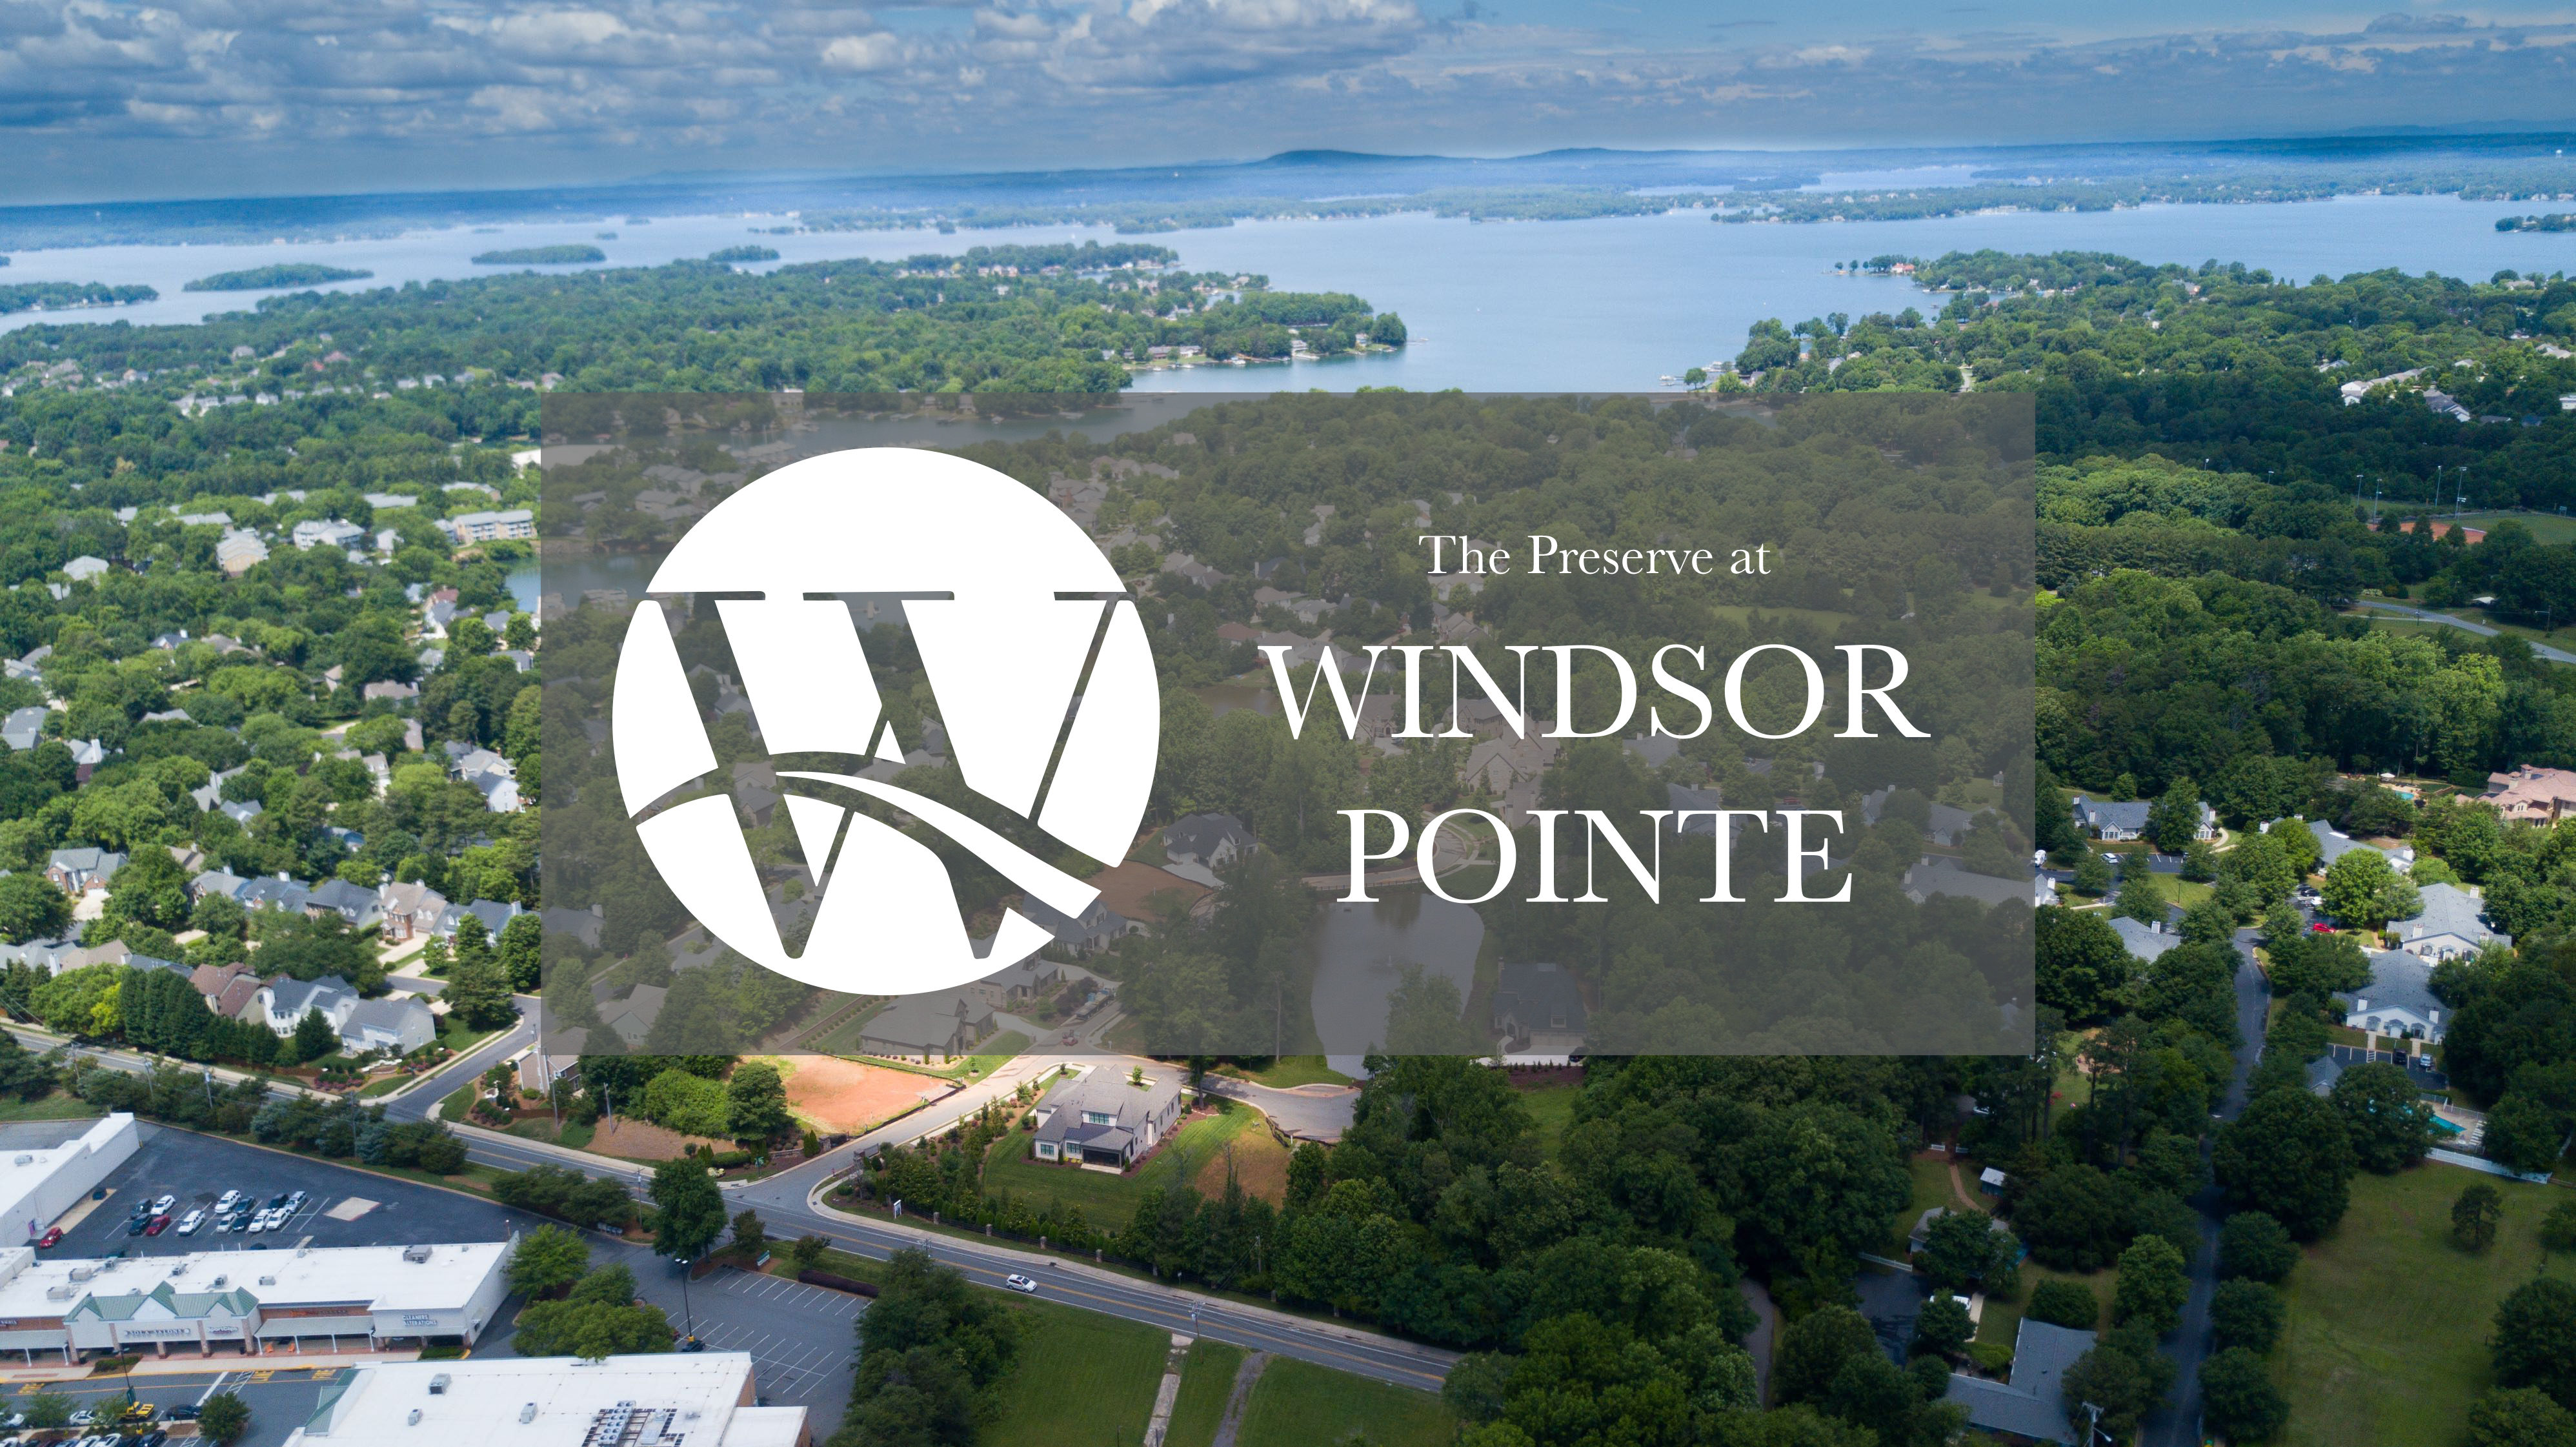 The Preserve at Windsor Pointe